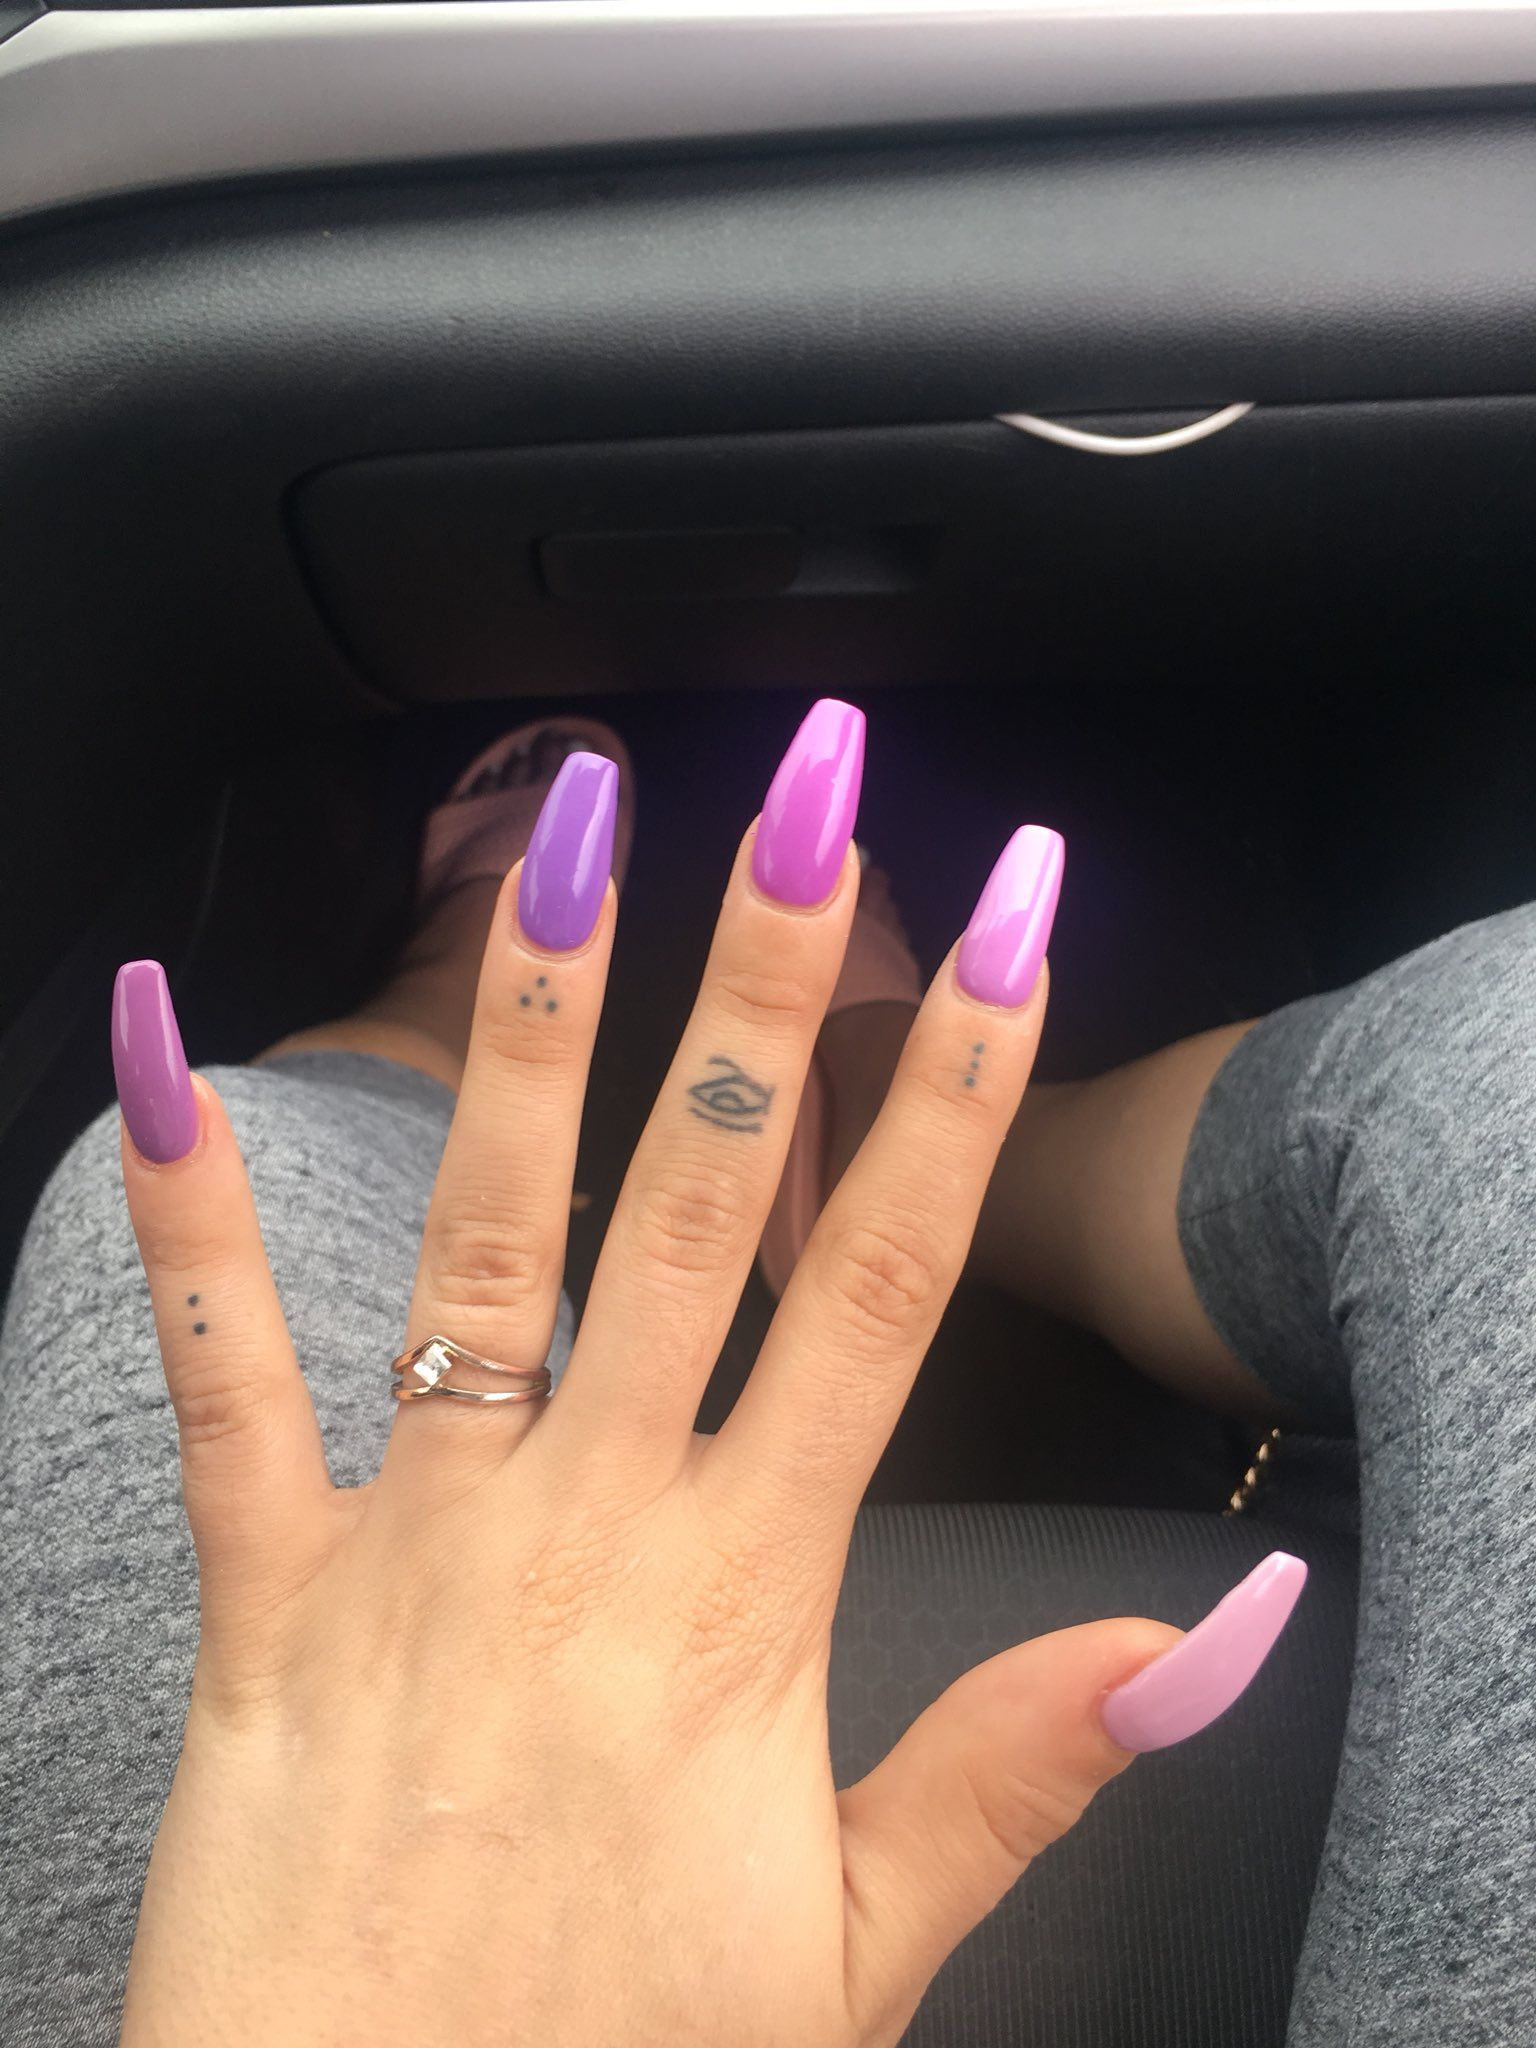 Pin By J P On Nails Purple And Pink Nails Purple Nails Pink Acrylic Nails